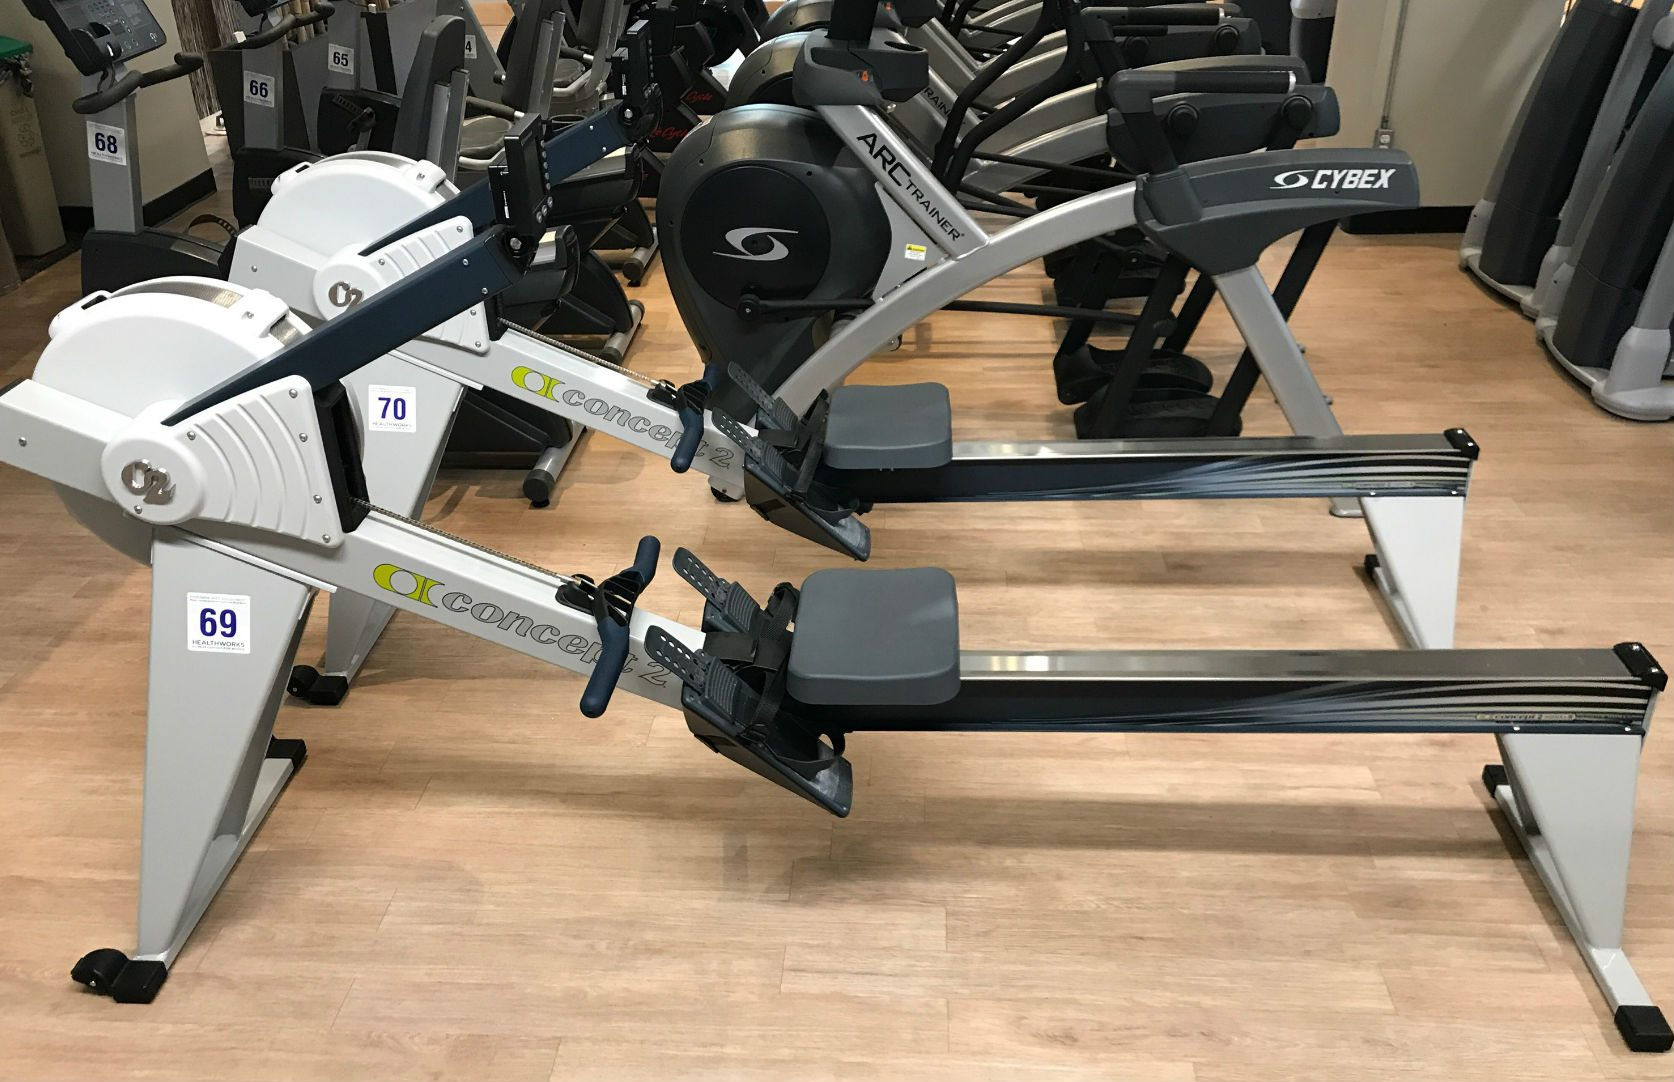 July Fitness Challenge: Row, Row, Row Your Way to Fitness